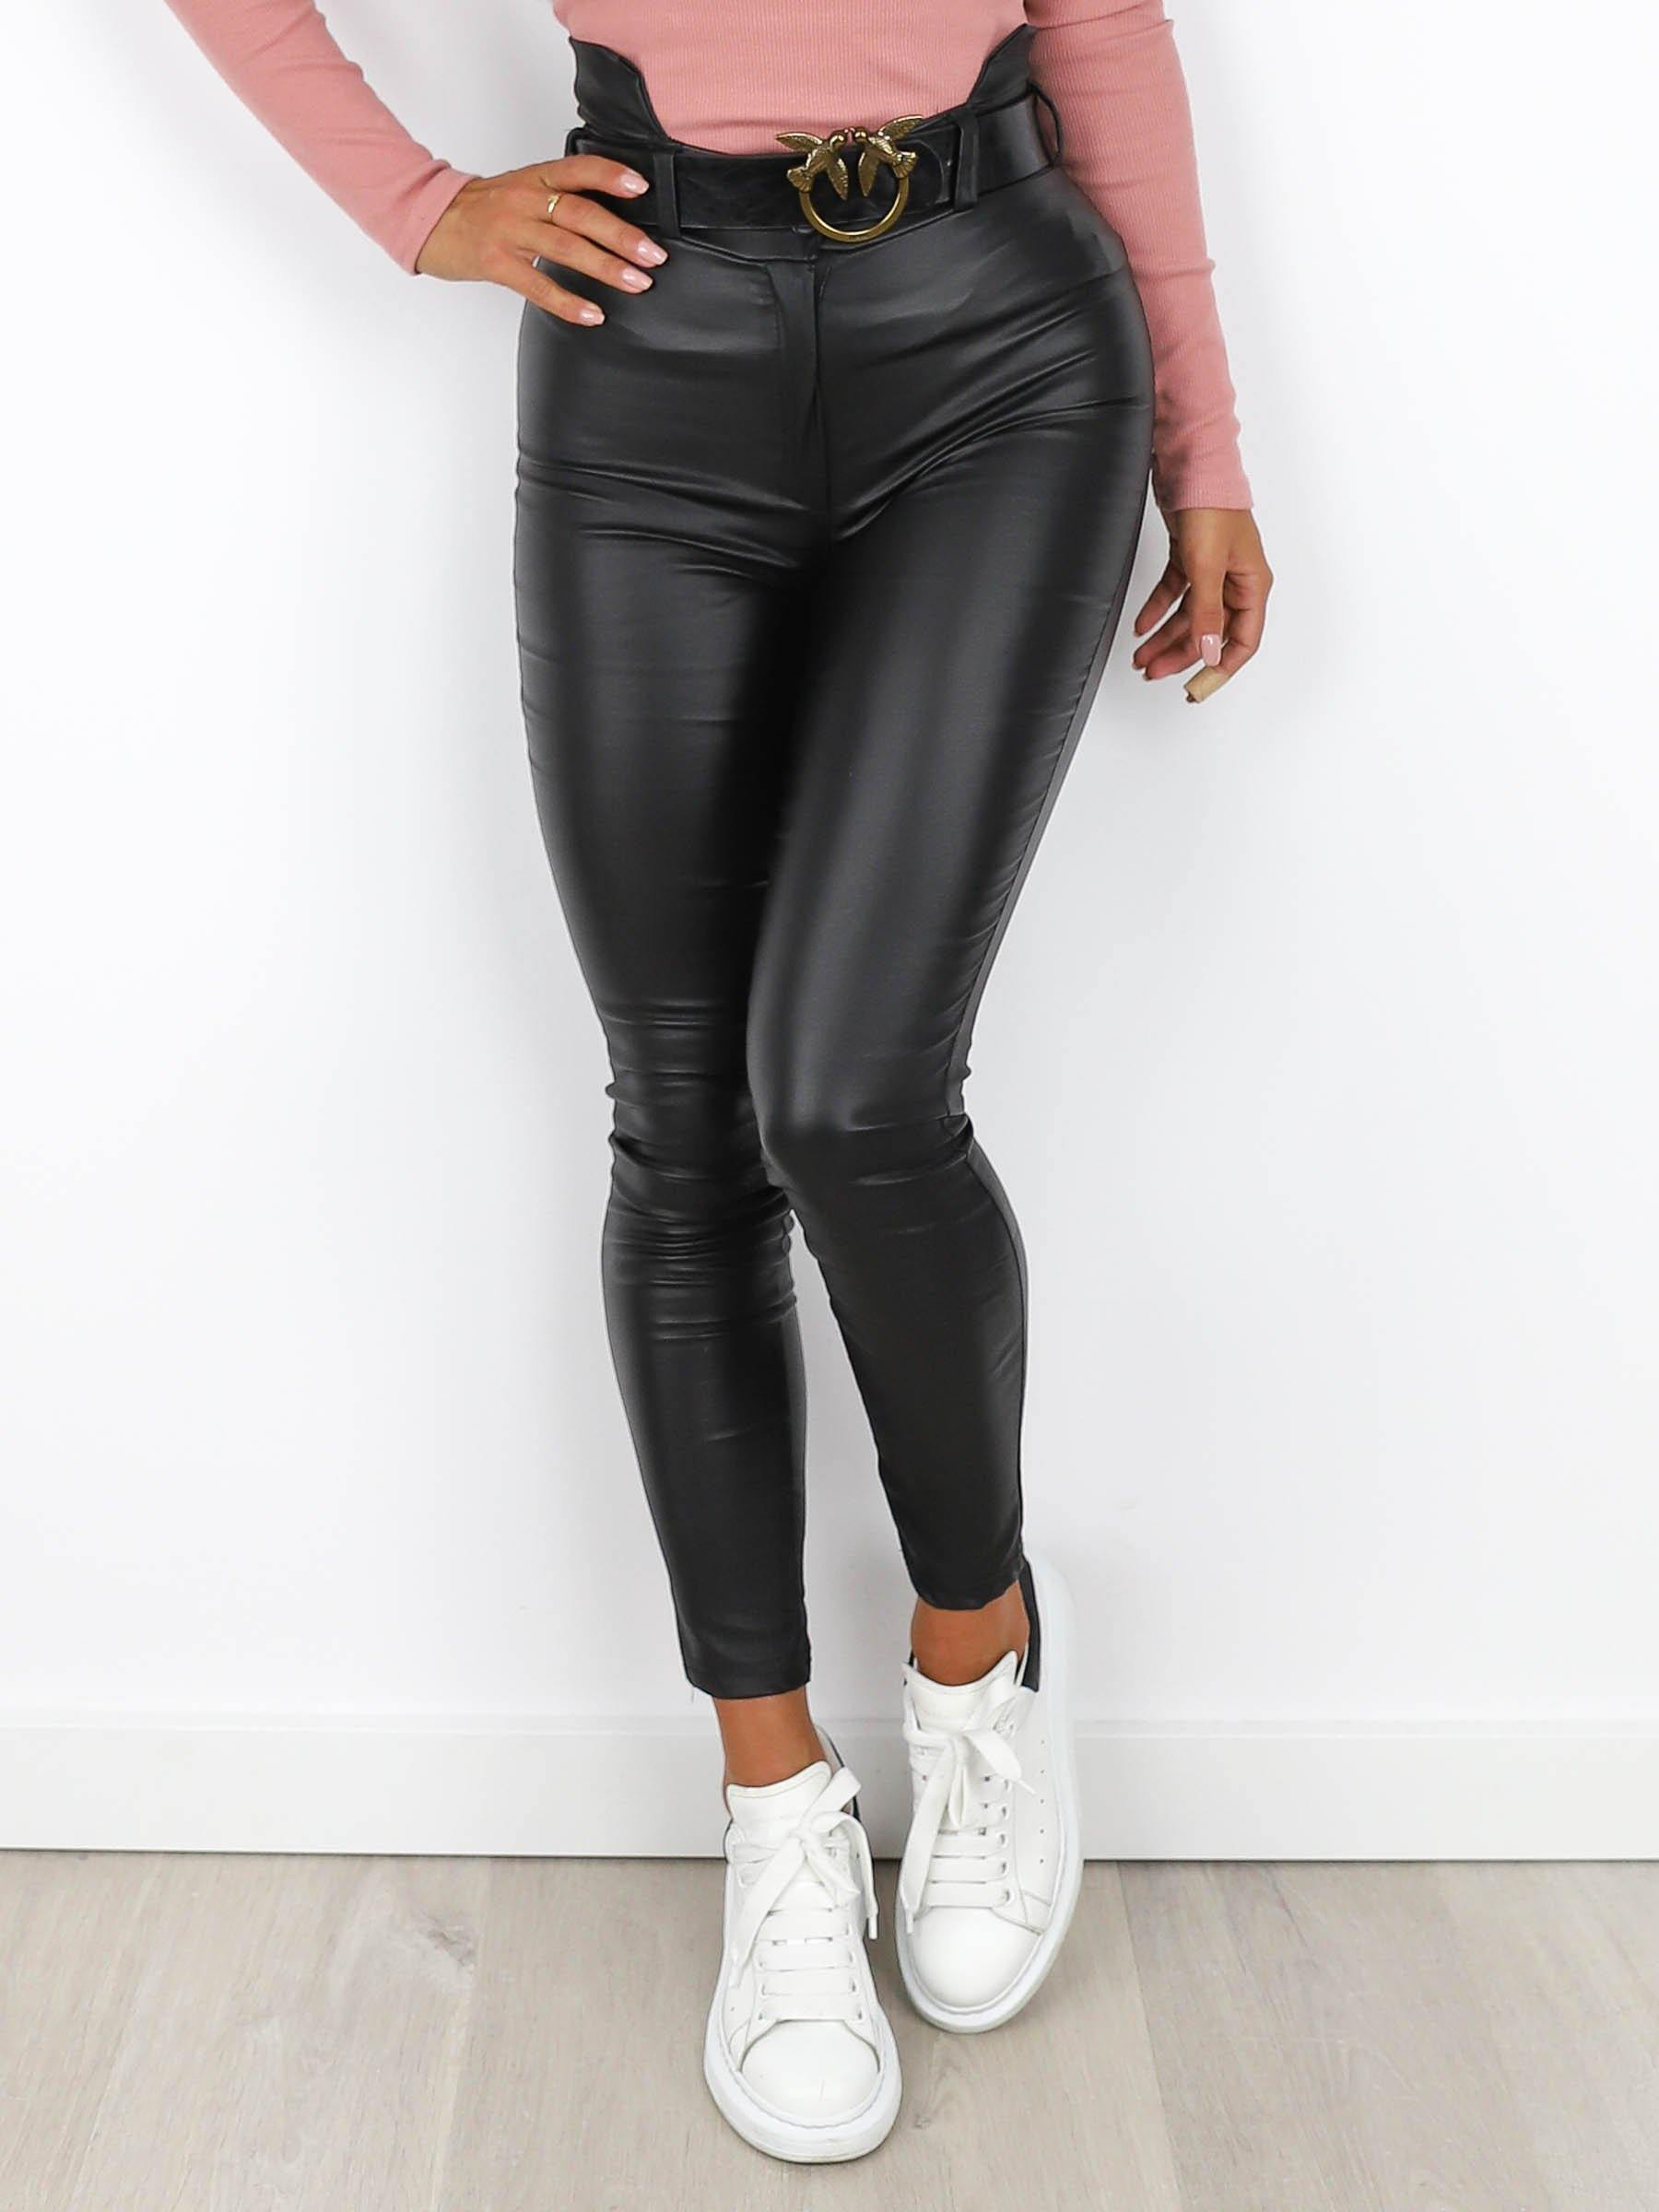 High Waisted Eco Leather Leggings/Trousers  Black  X188 - Wassyl Fashion UK LTD